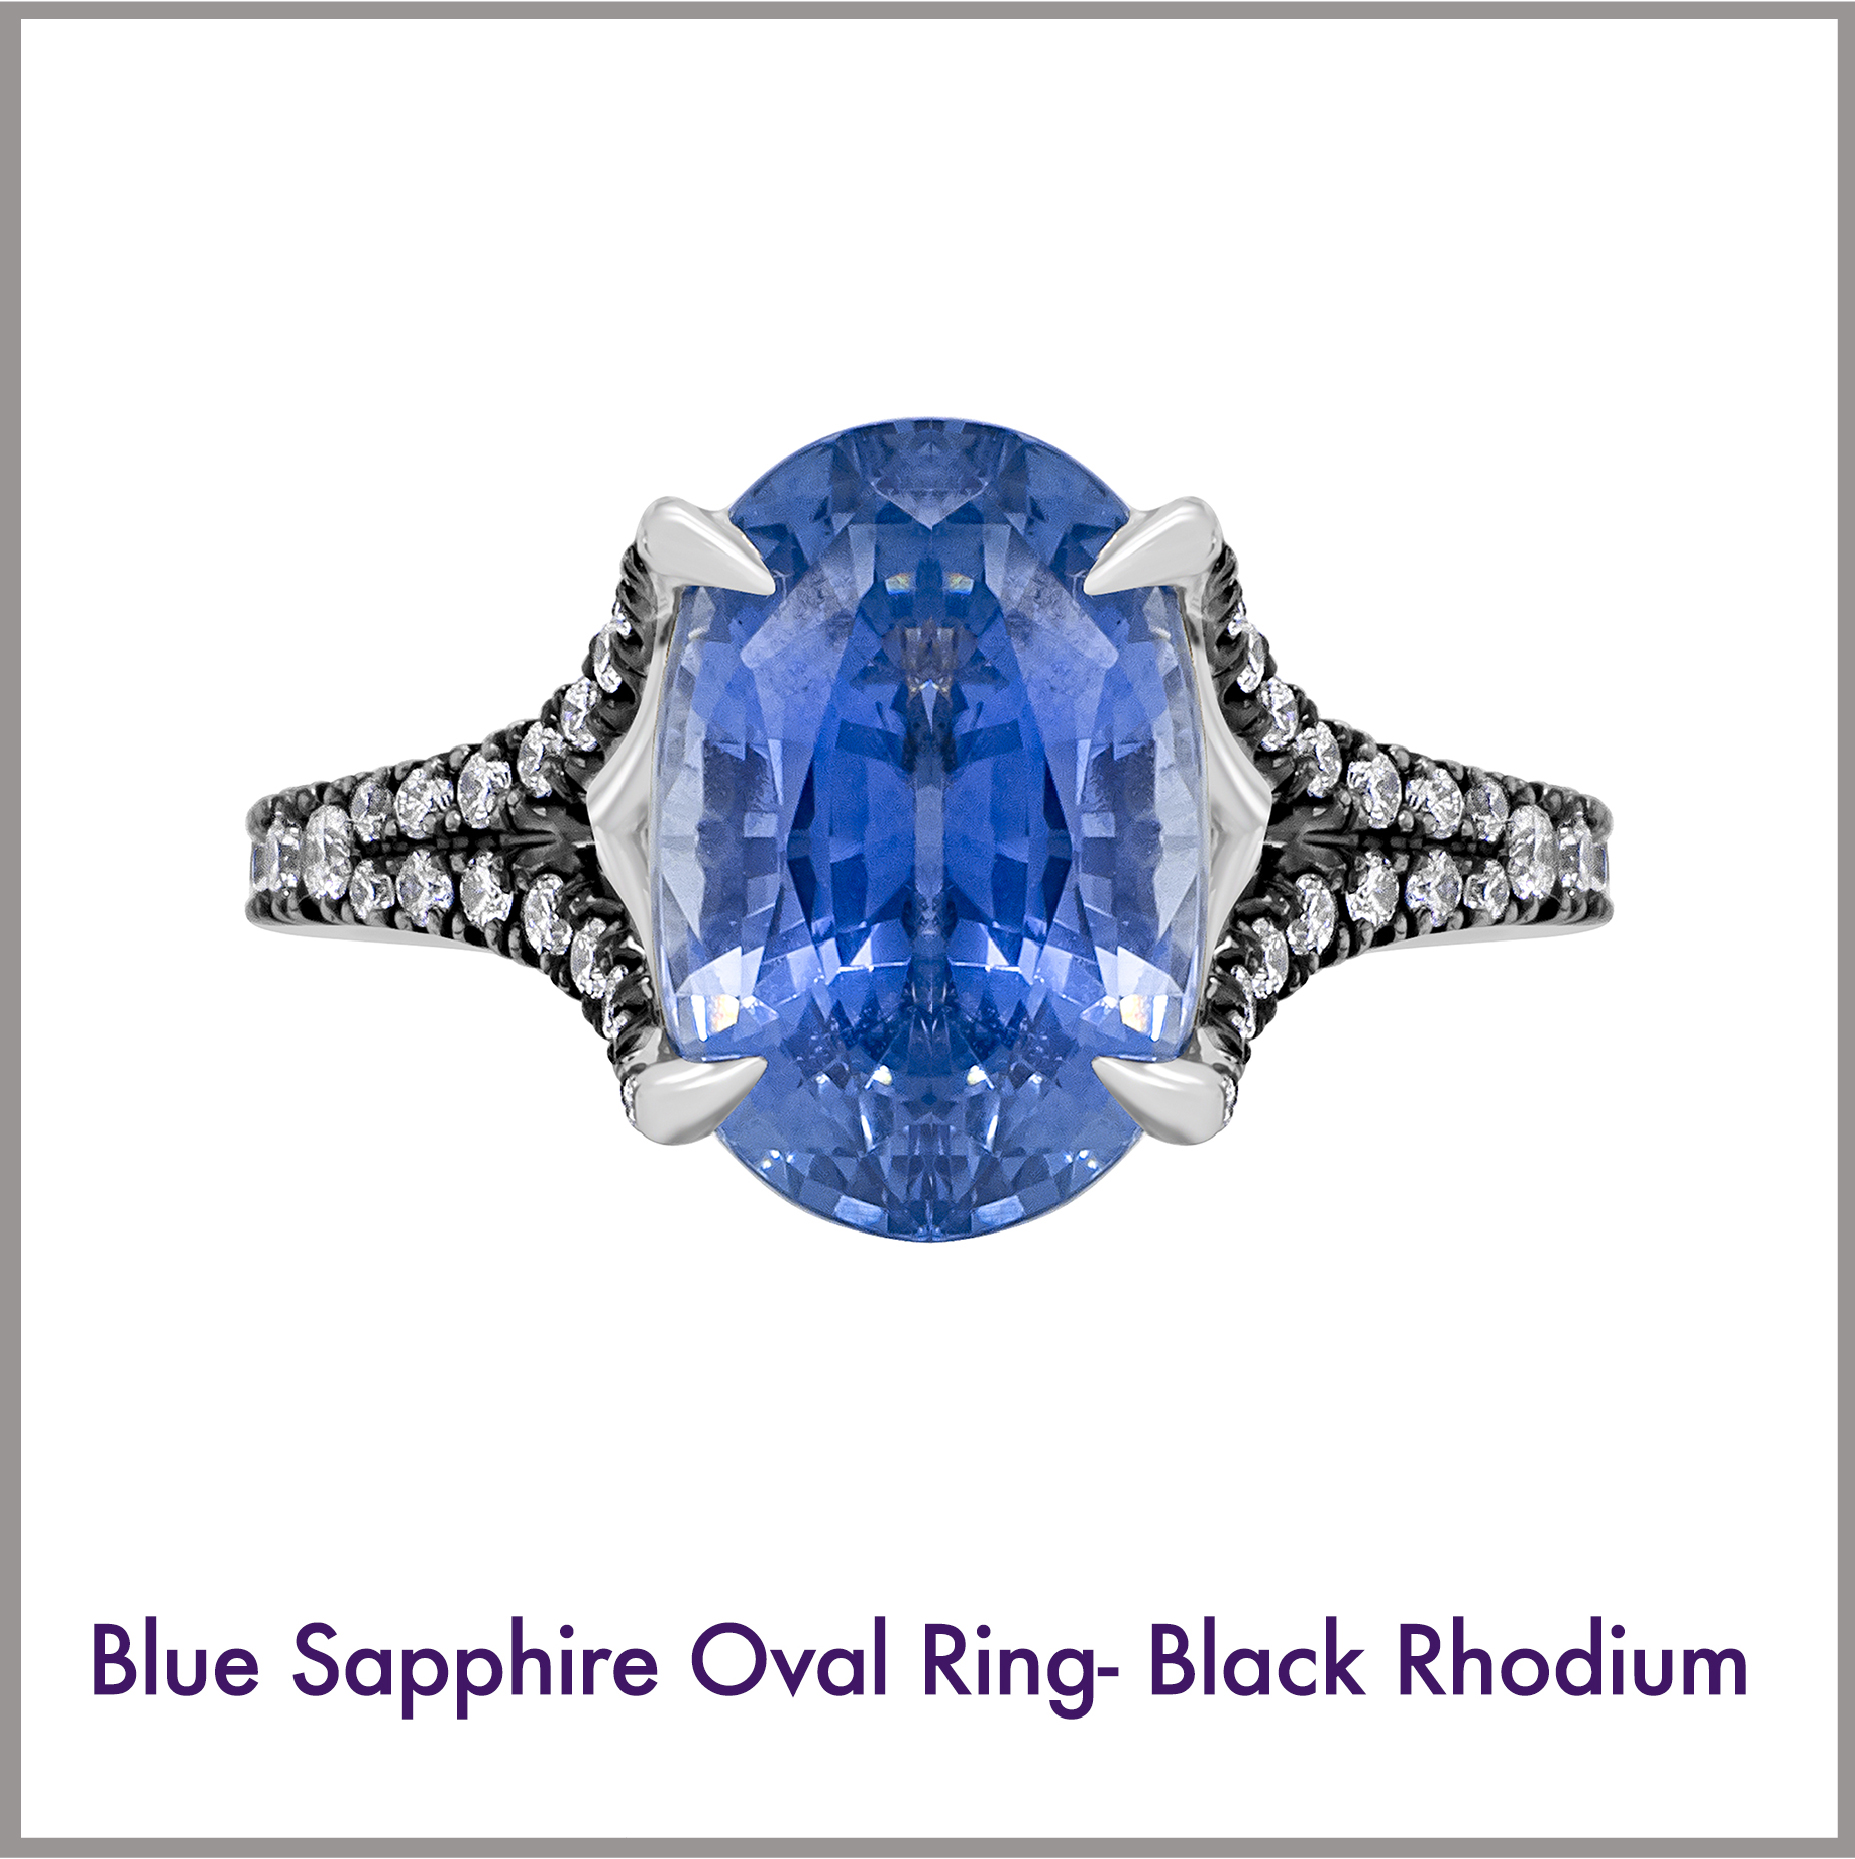 Oval Blue Sapphire Ring with Black Rhodium